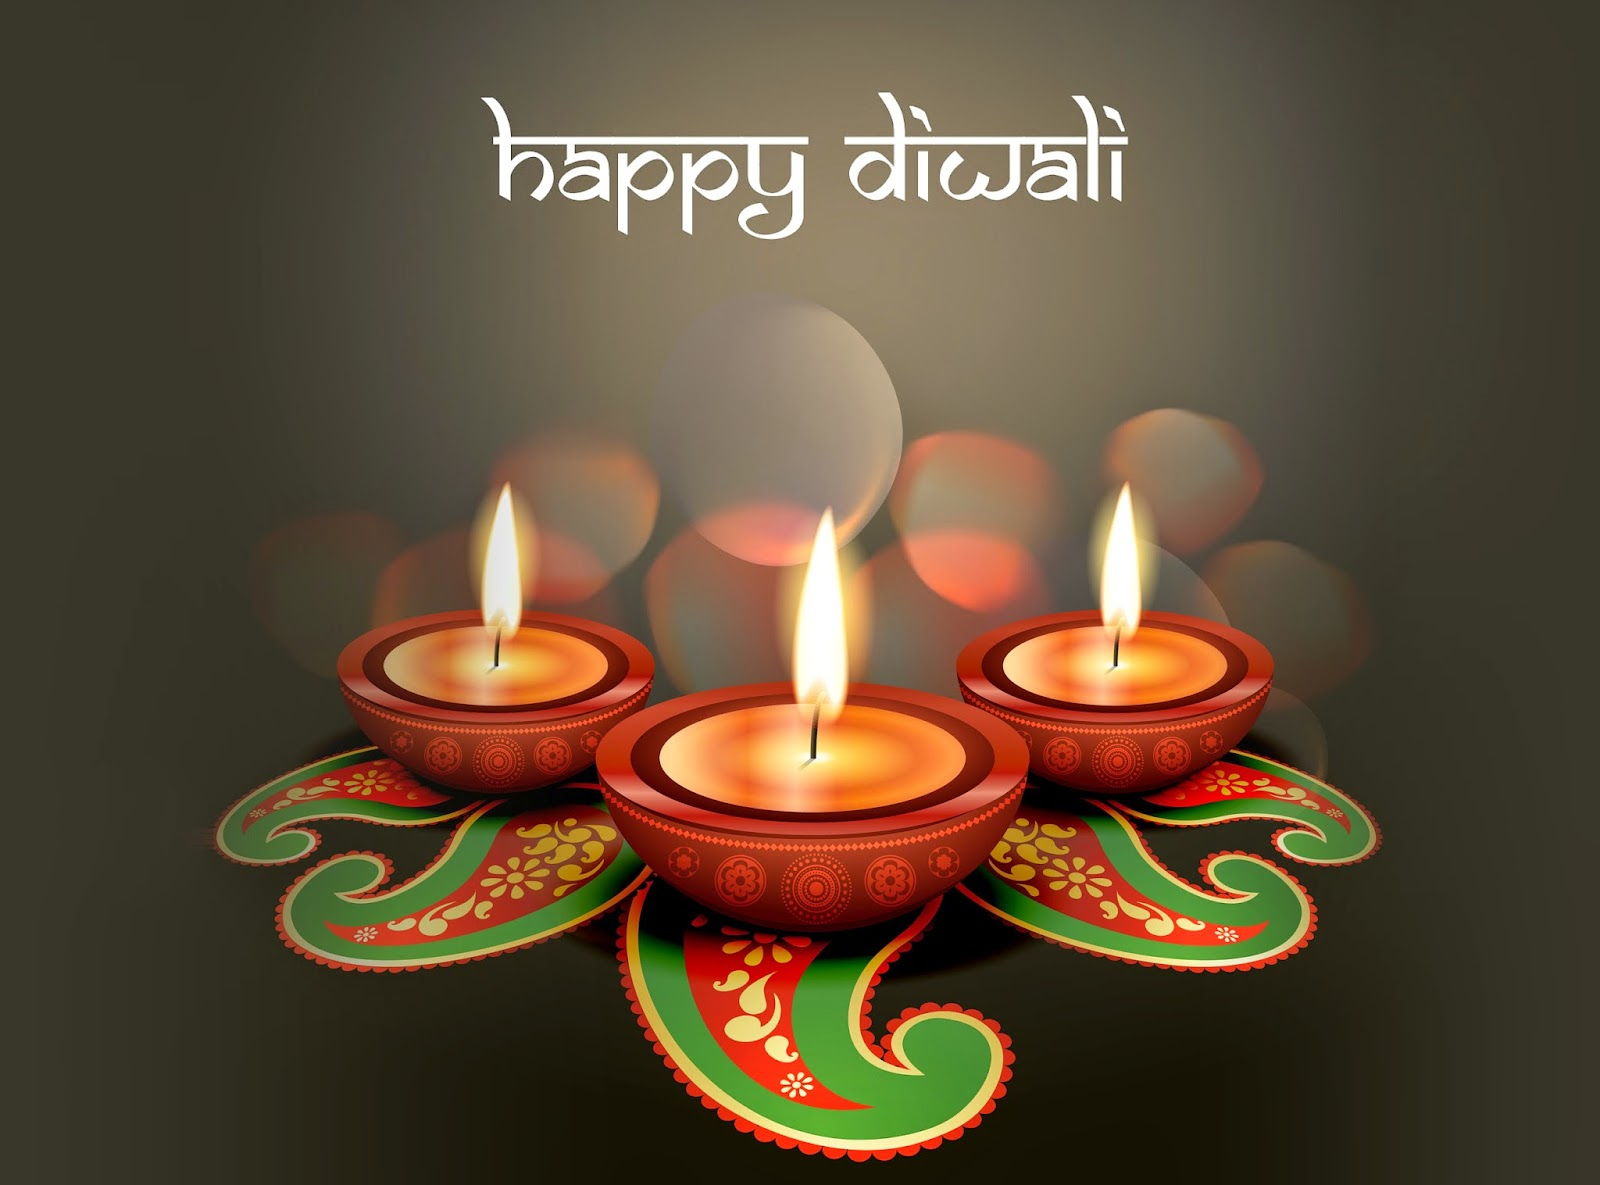 happy diwali to all my readers, and some quick diwali recipes...